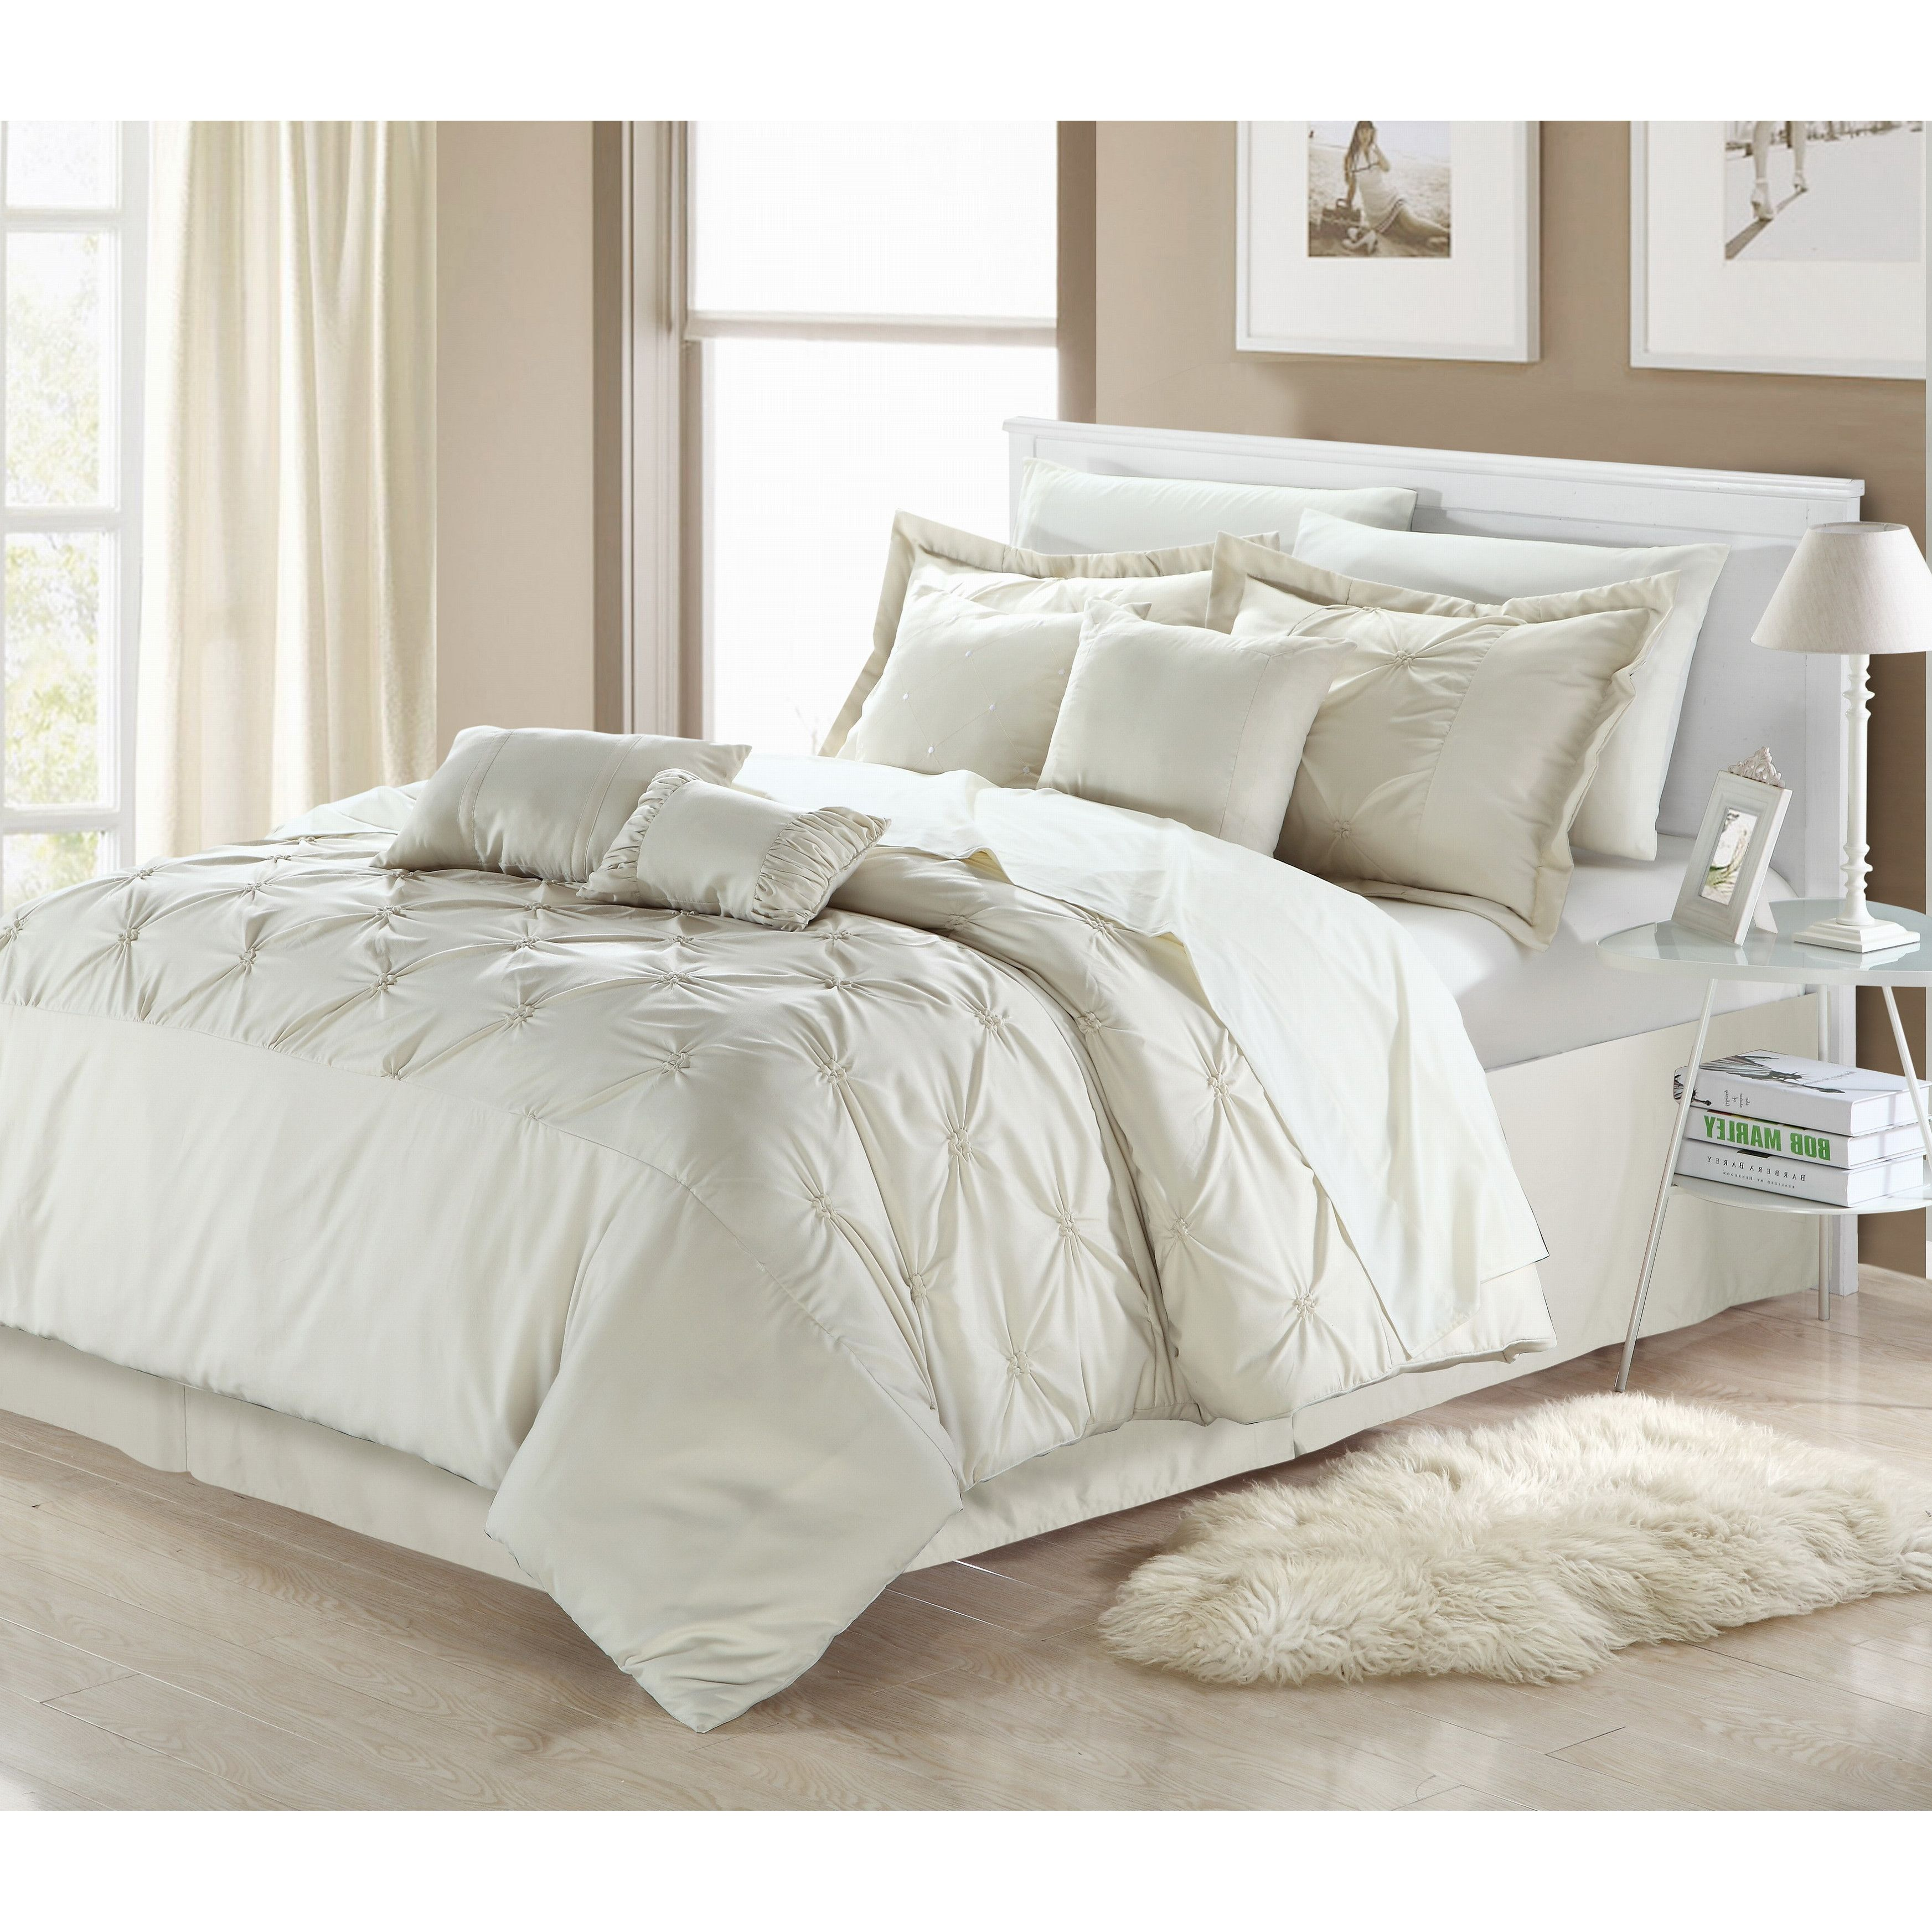 $99 Shop Wayfair for Bedding Sets to match every style and ...